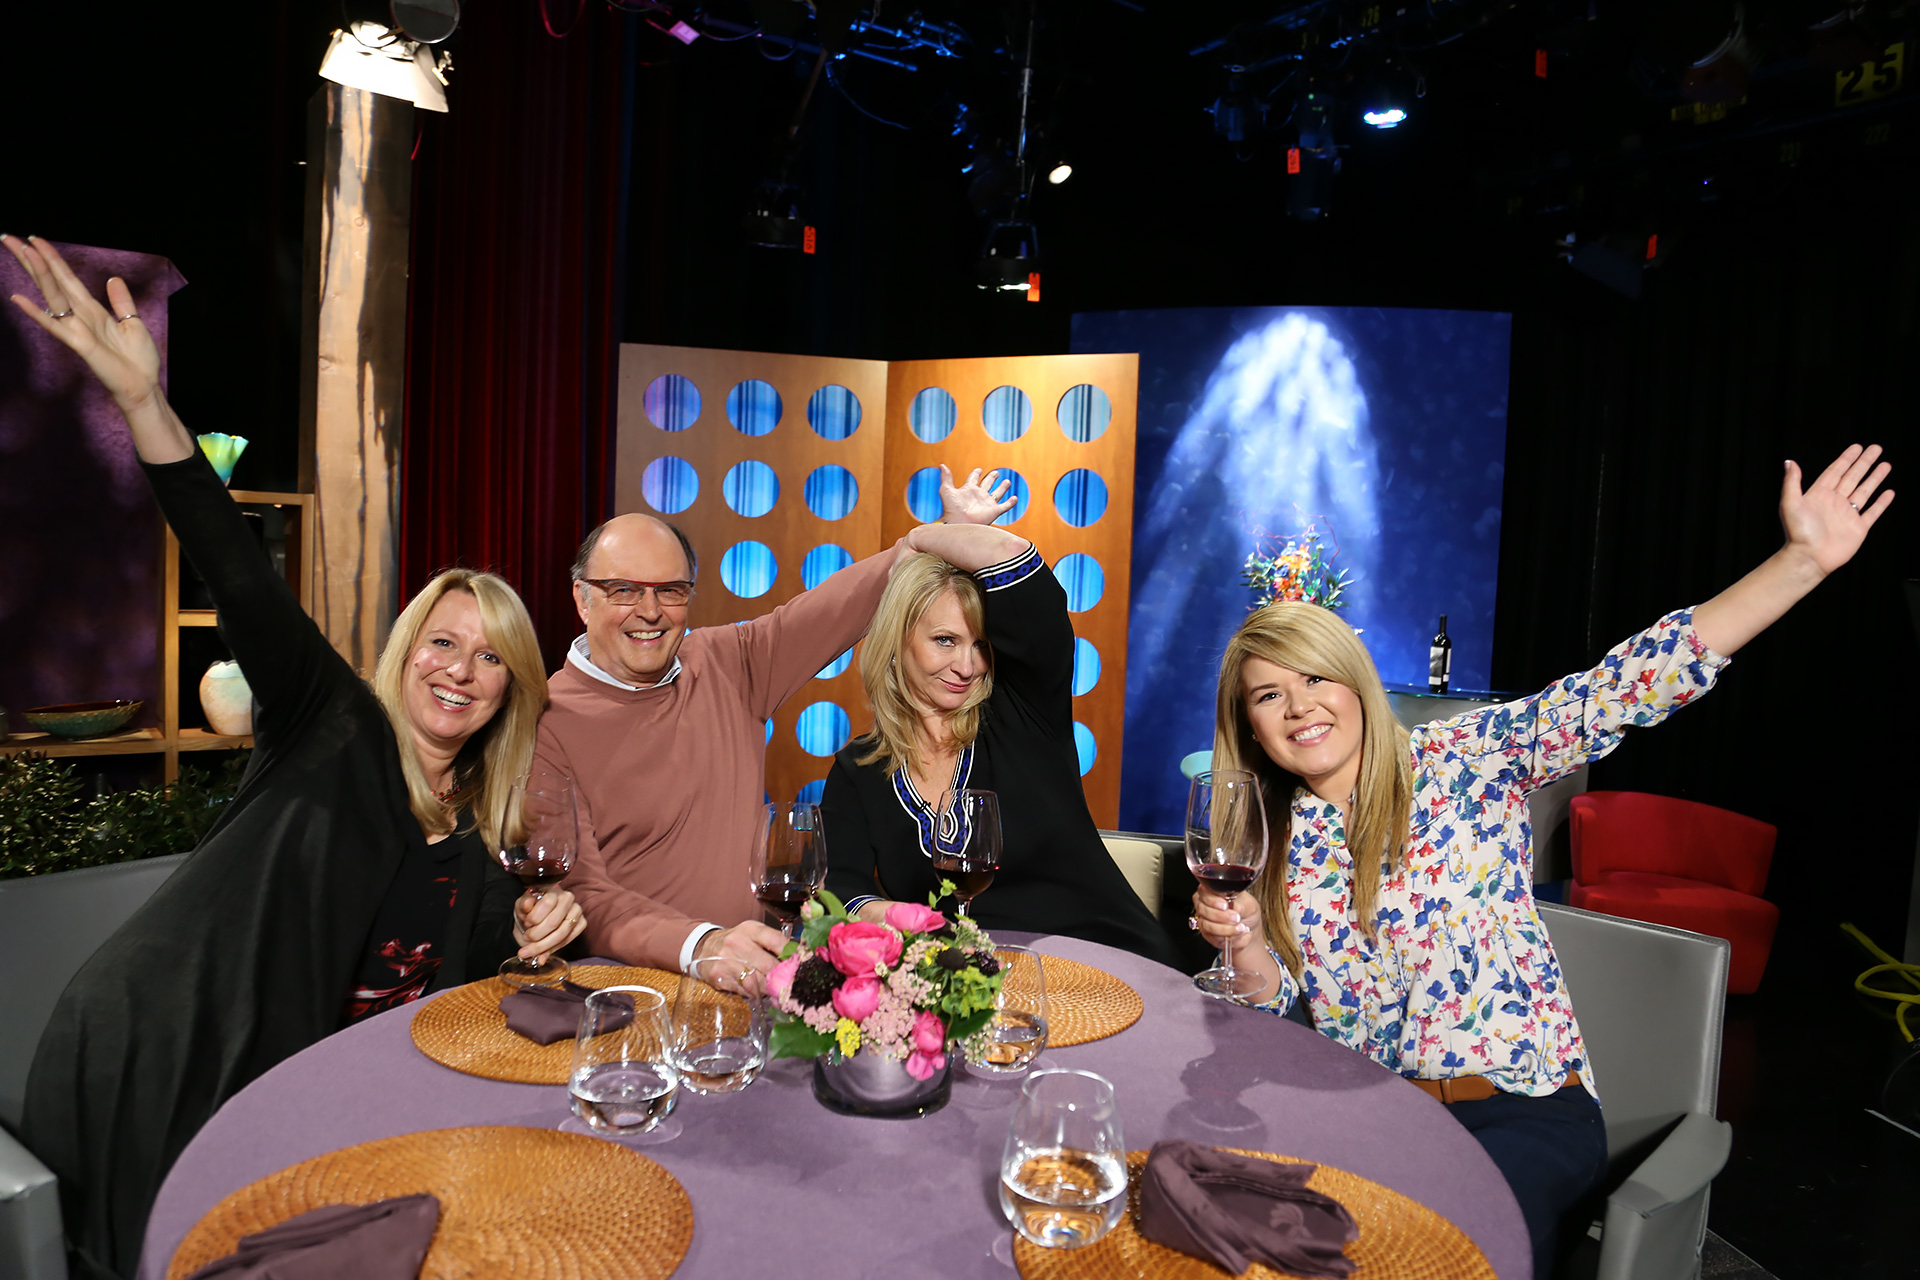 Host Leslie Sbrocco and guests having fun on the set of season 12 episode 17.